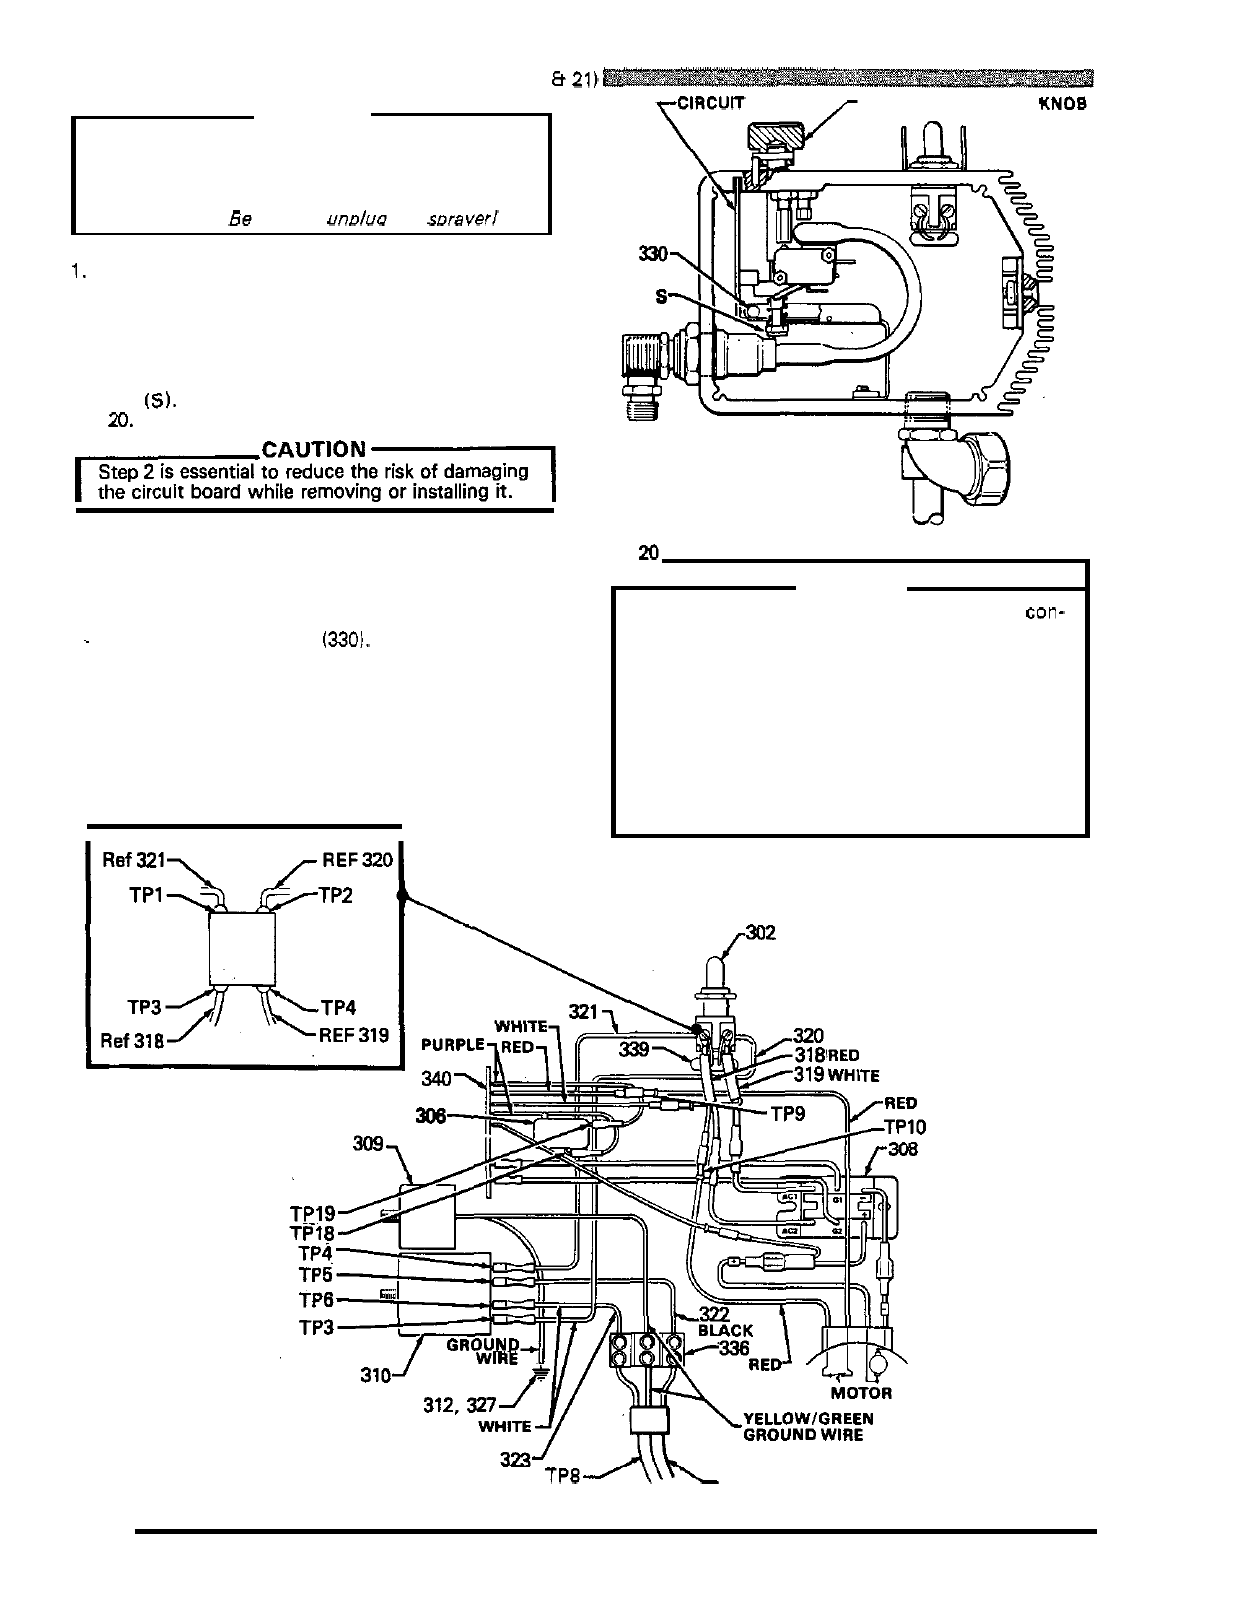 Page 23 of Graco Paint Sprayer 230-963 User Guide